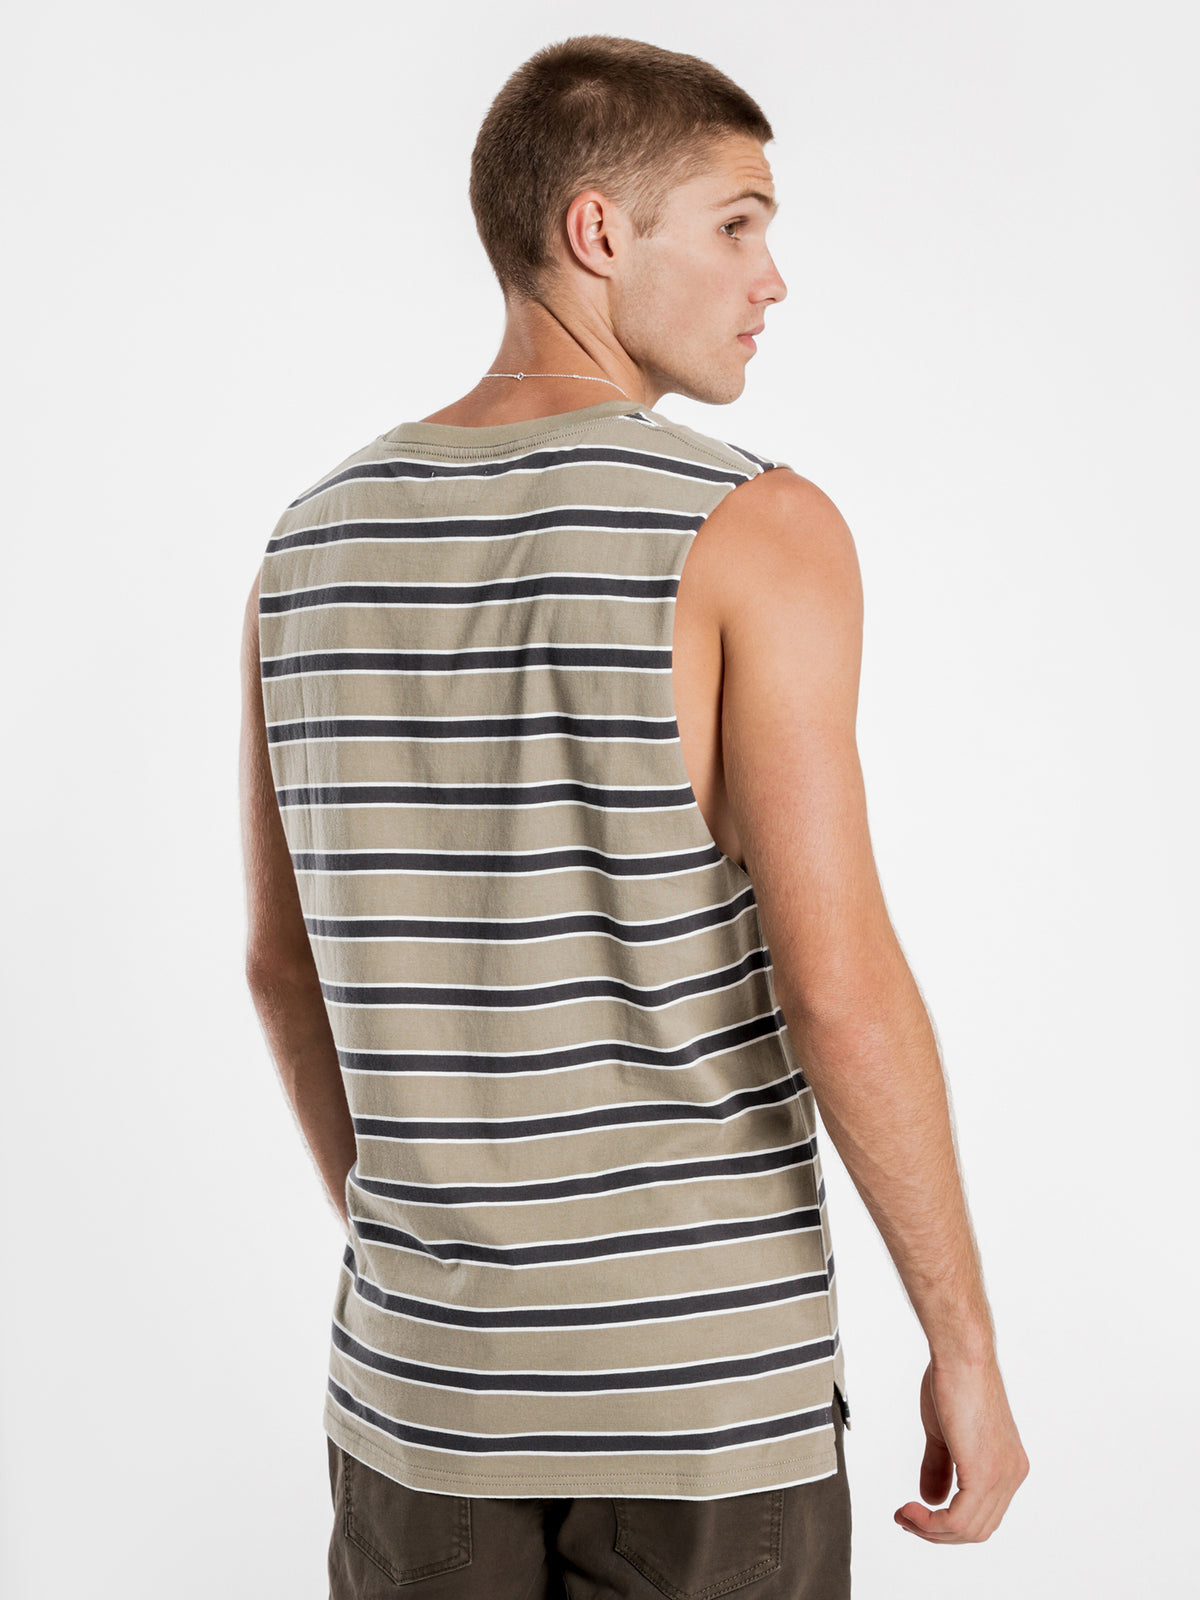 Southport Muscle in Olive Stripe